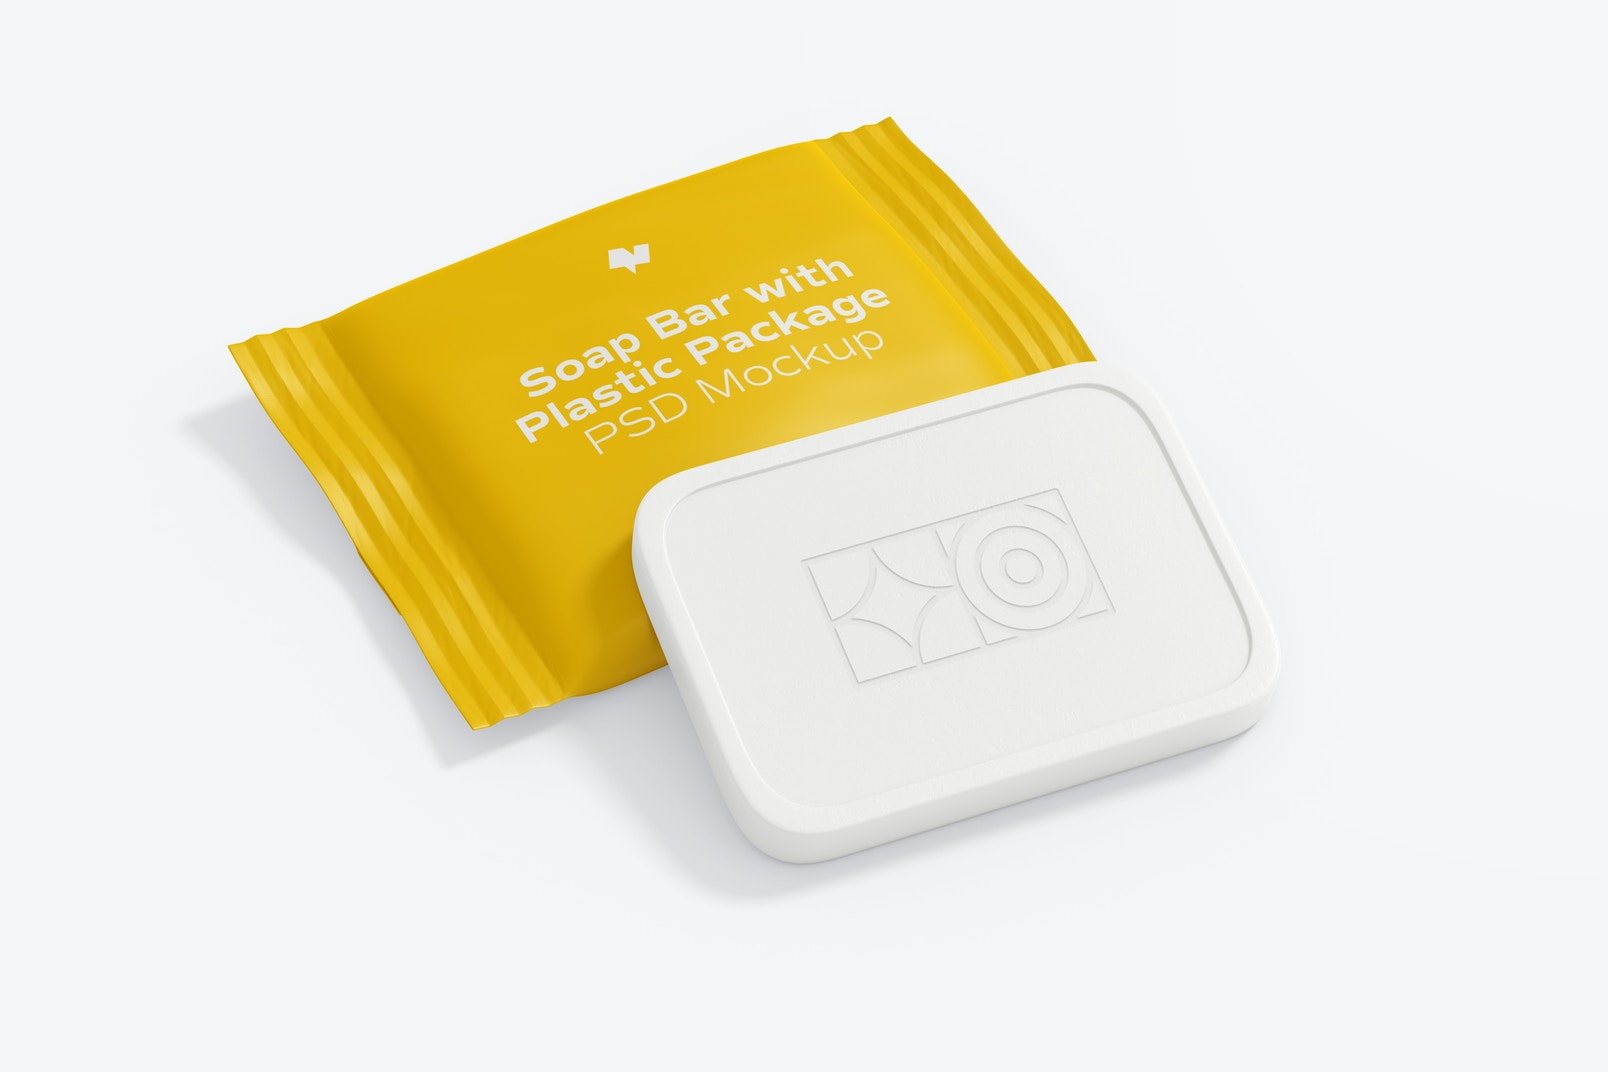 Soap Bar with Plastic Package Mockup